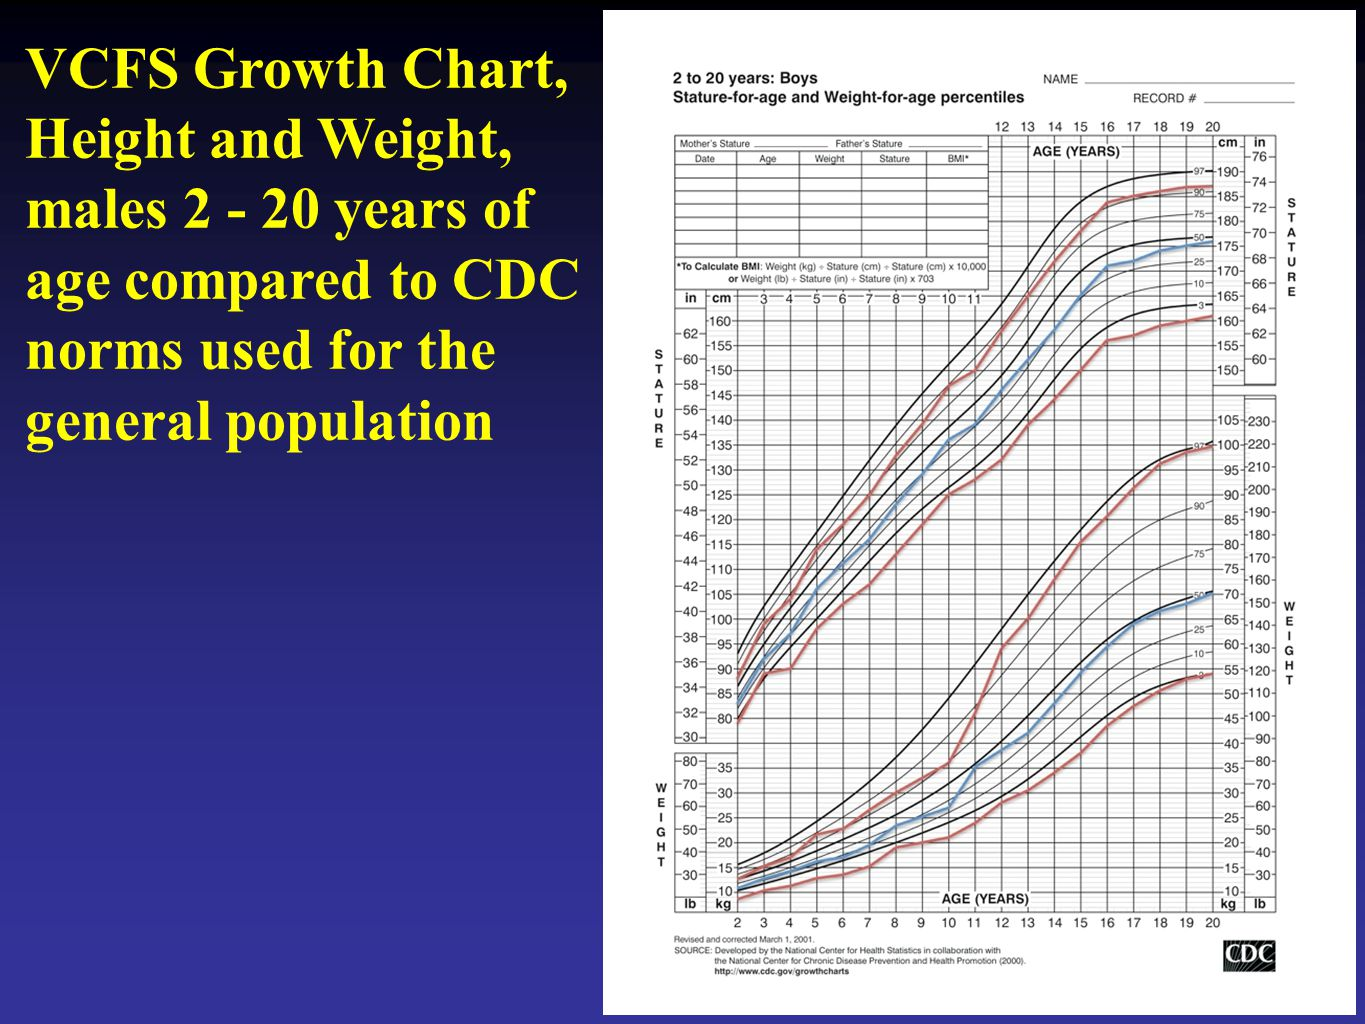 VCFS Growth Chart, Height and Weight, males 2 - 20 years of age compared to CDC norms used for the general population